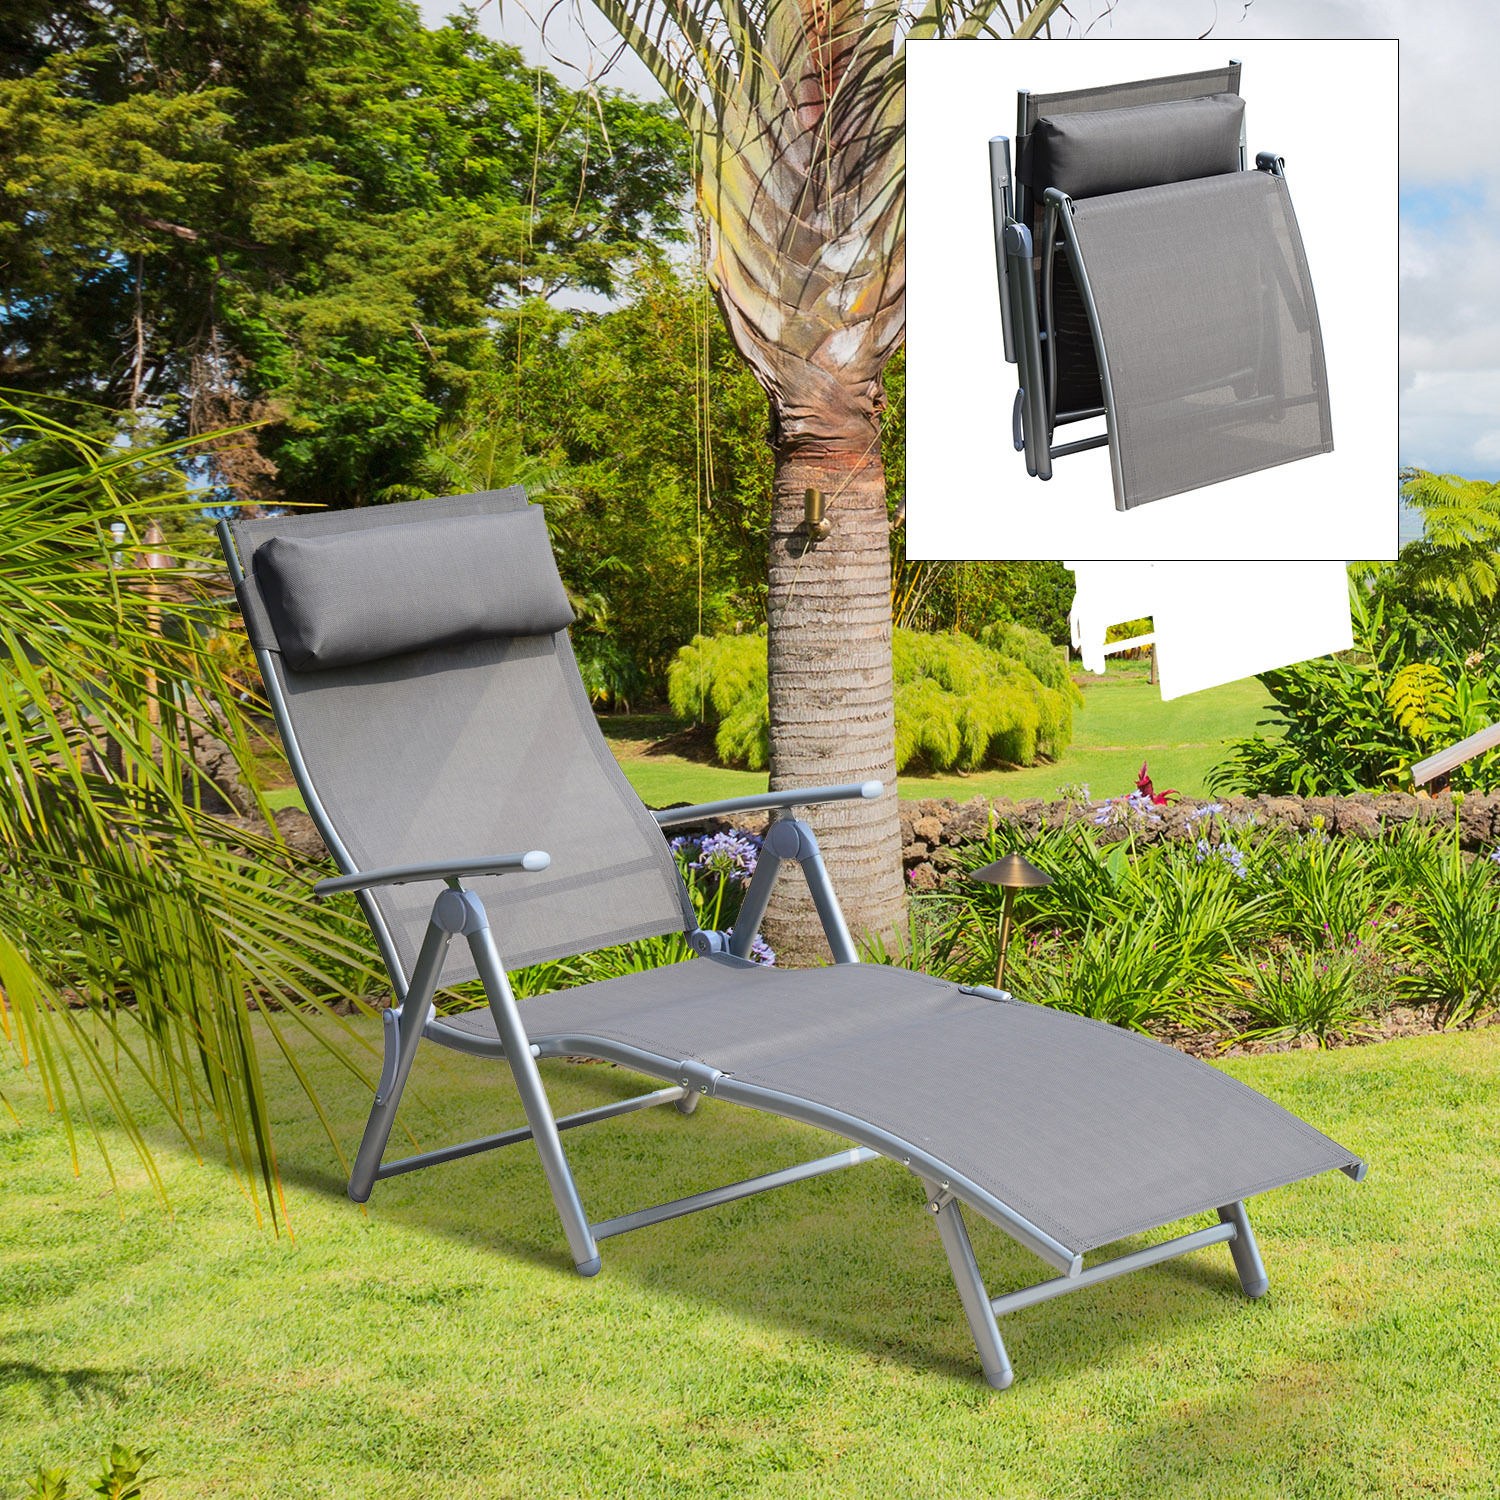 chair beach patio folding lounge deluxe aluminum sundale yard chaise pool recliner foldable outdoor